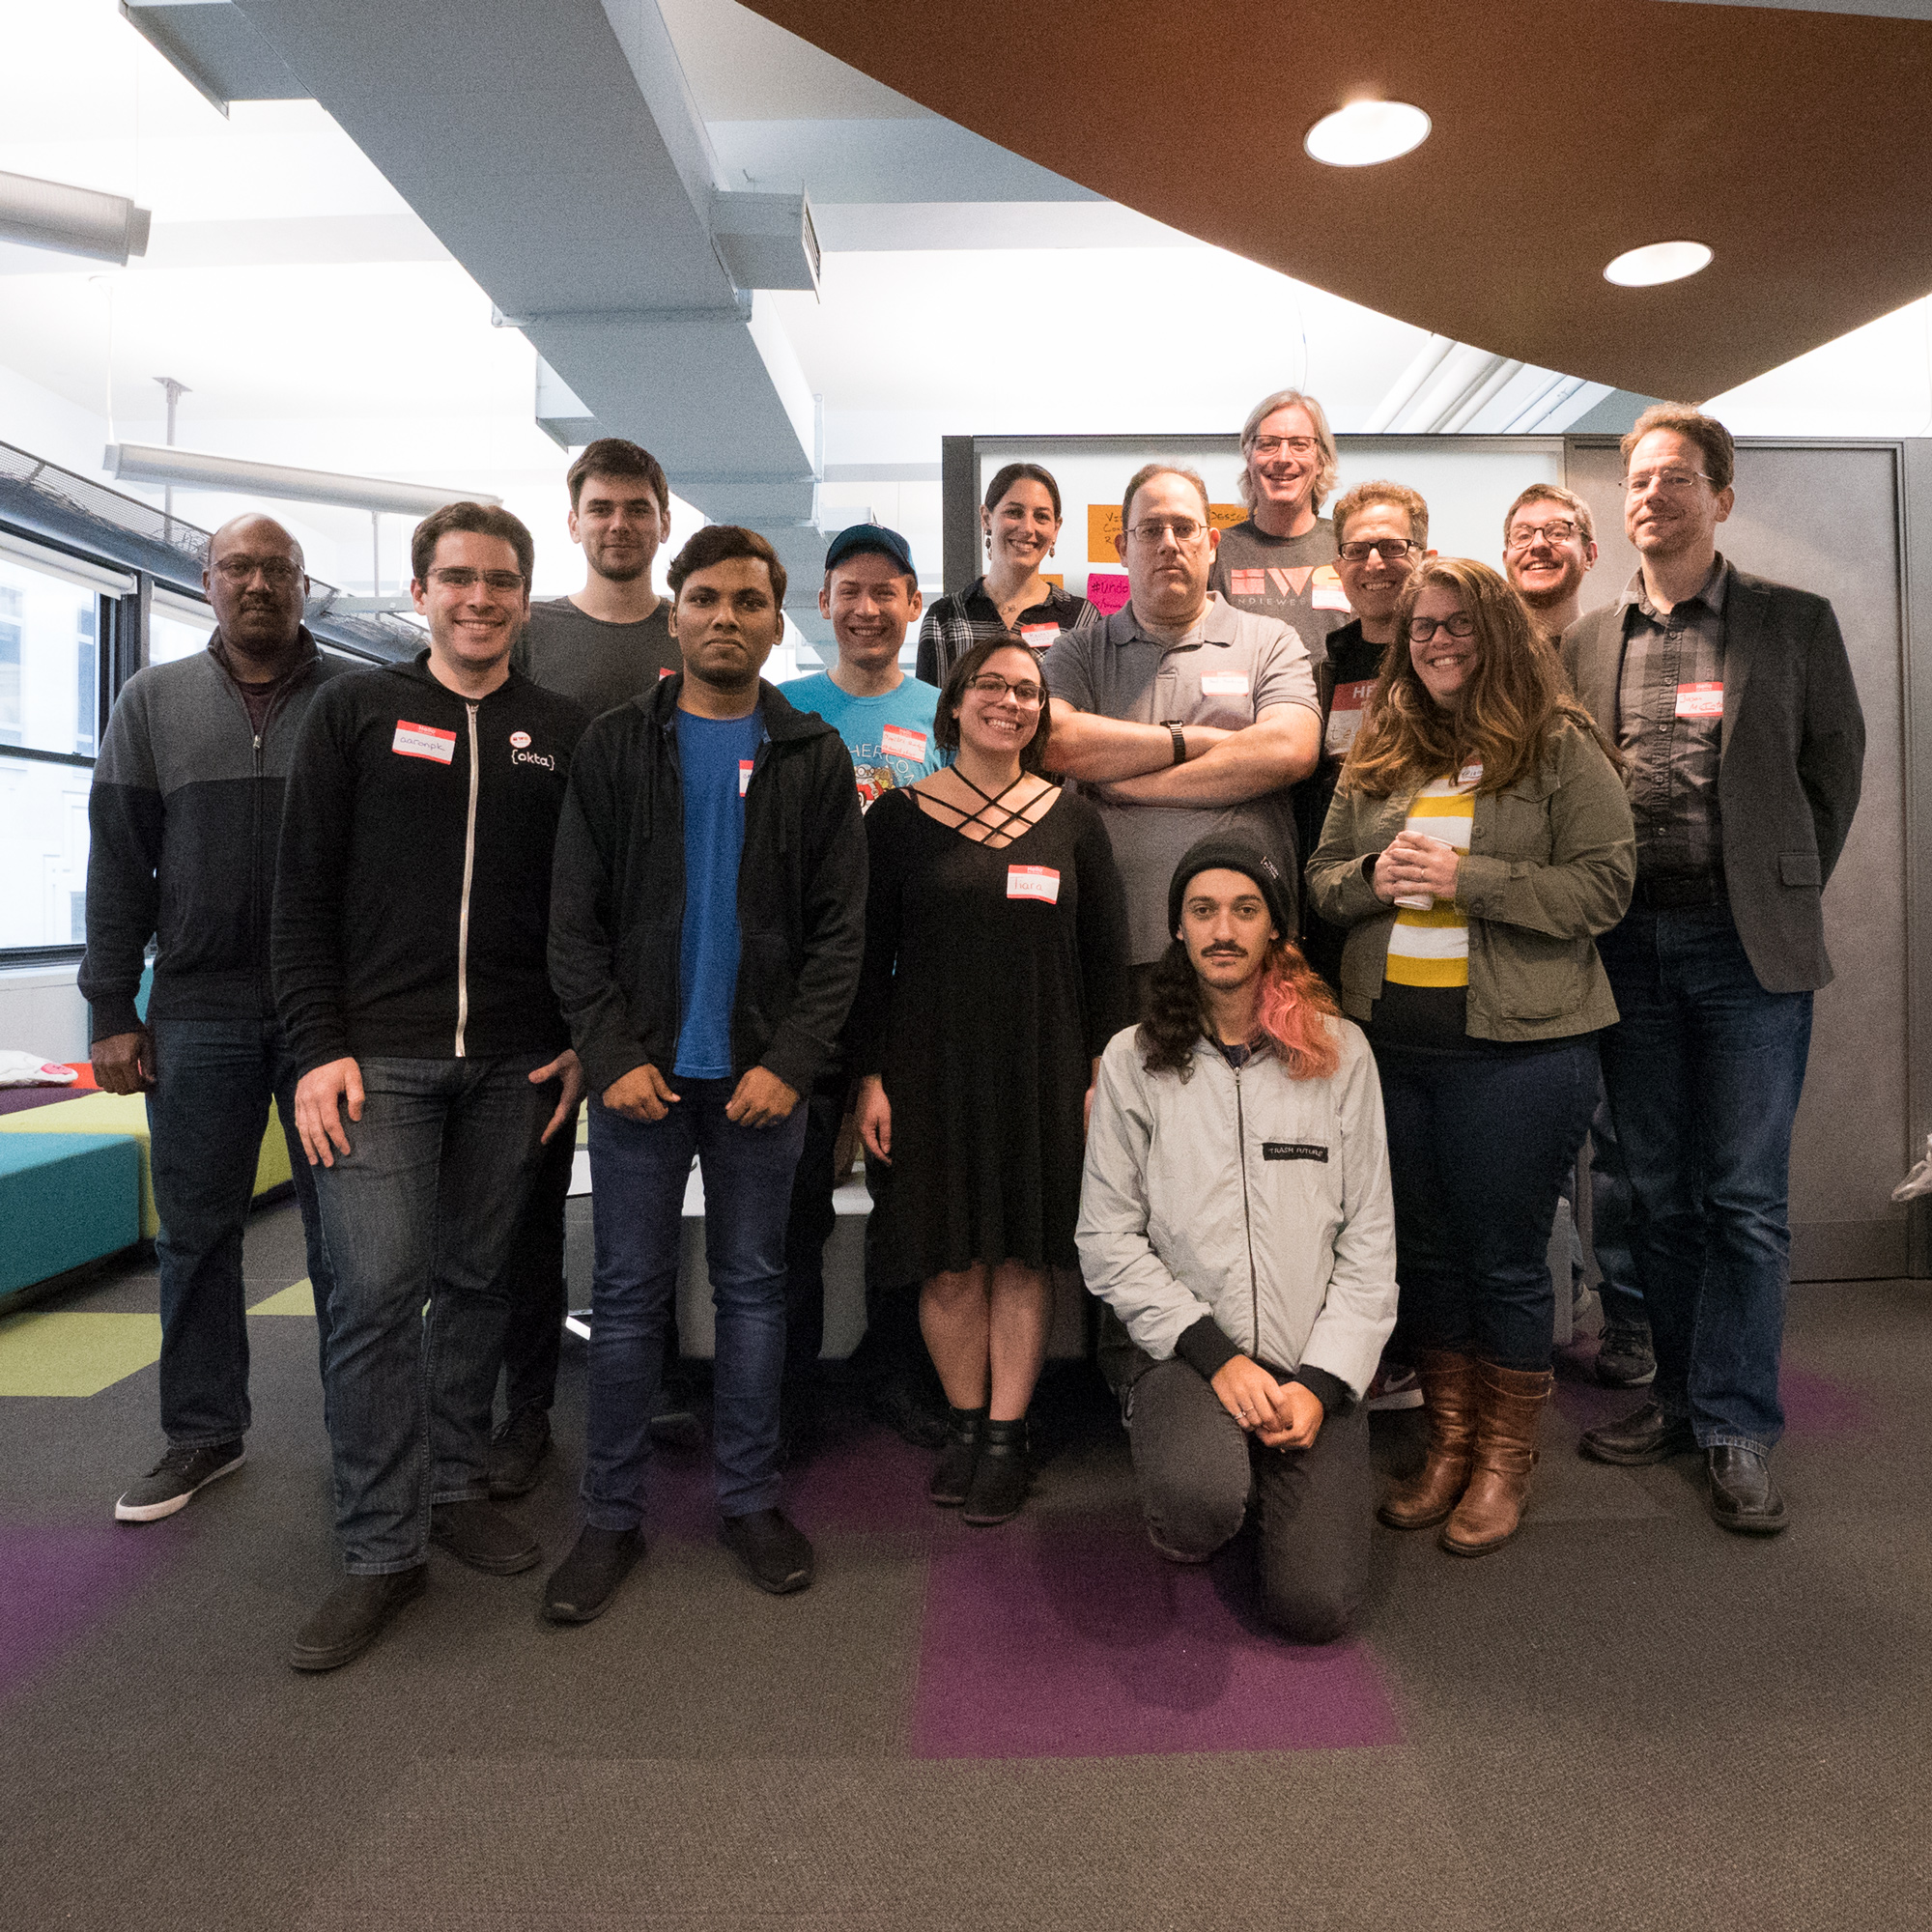 Photo of attendees of IndieWebCamp NYC 2018 day 1